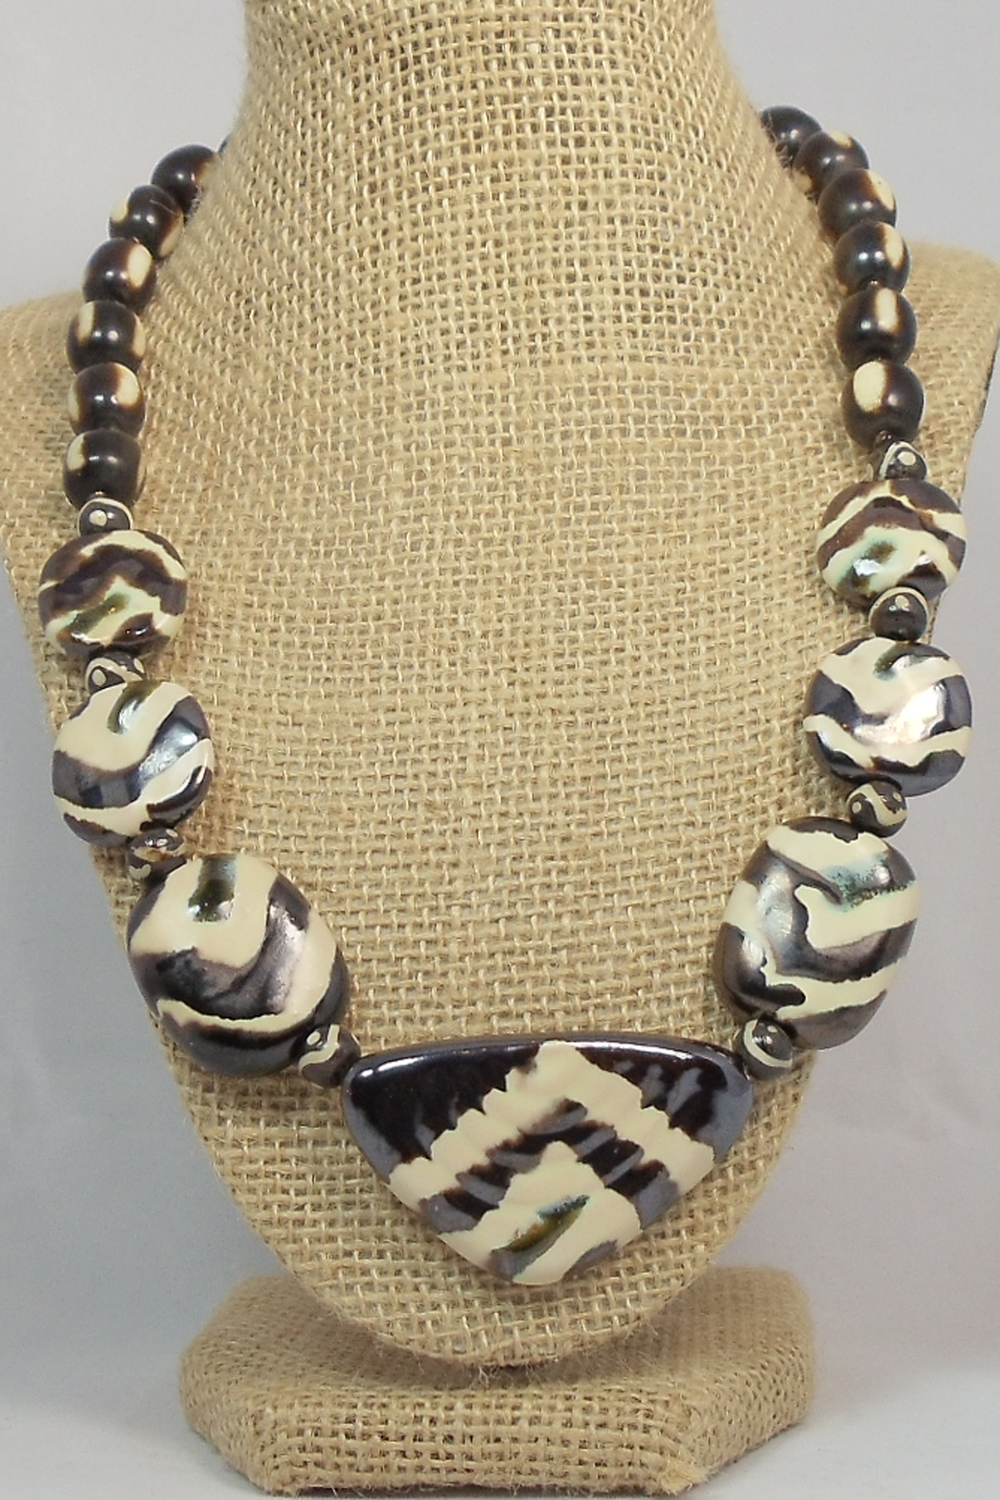 B 52 - Kuumba                                                Sadarryle Rhone Jewelry incorporates handmade recycled paper beads and fair trade beads from various groups.